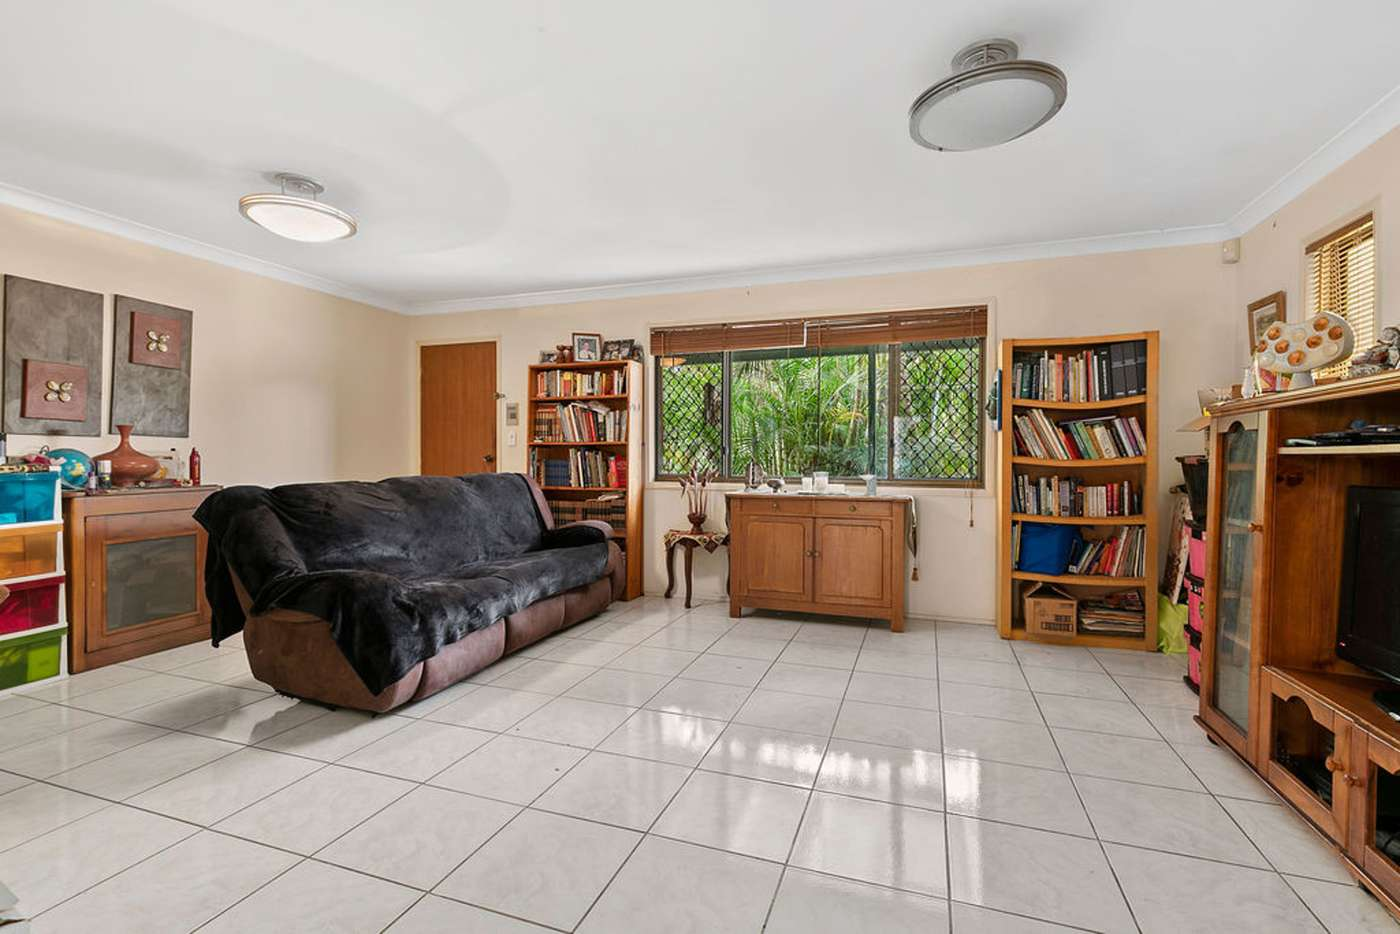 Main view of Homely house listing, 2 Redruth Rd, Alexandra Hills, QLD 4161